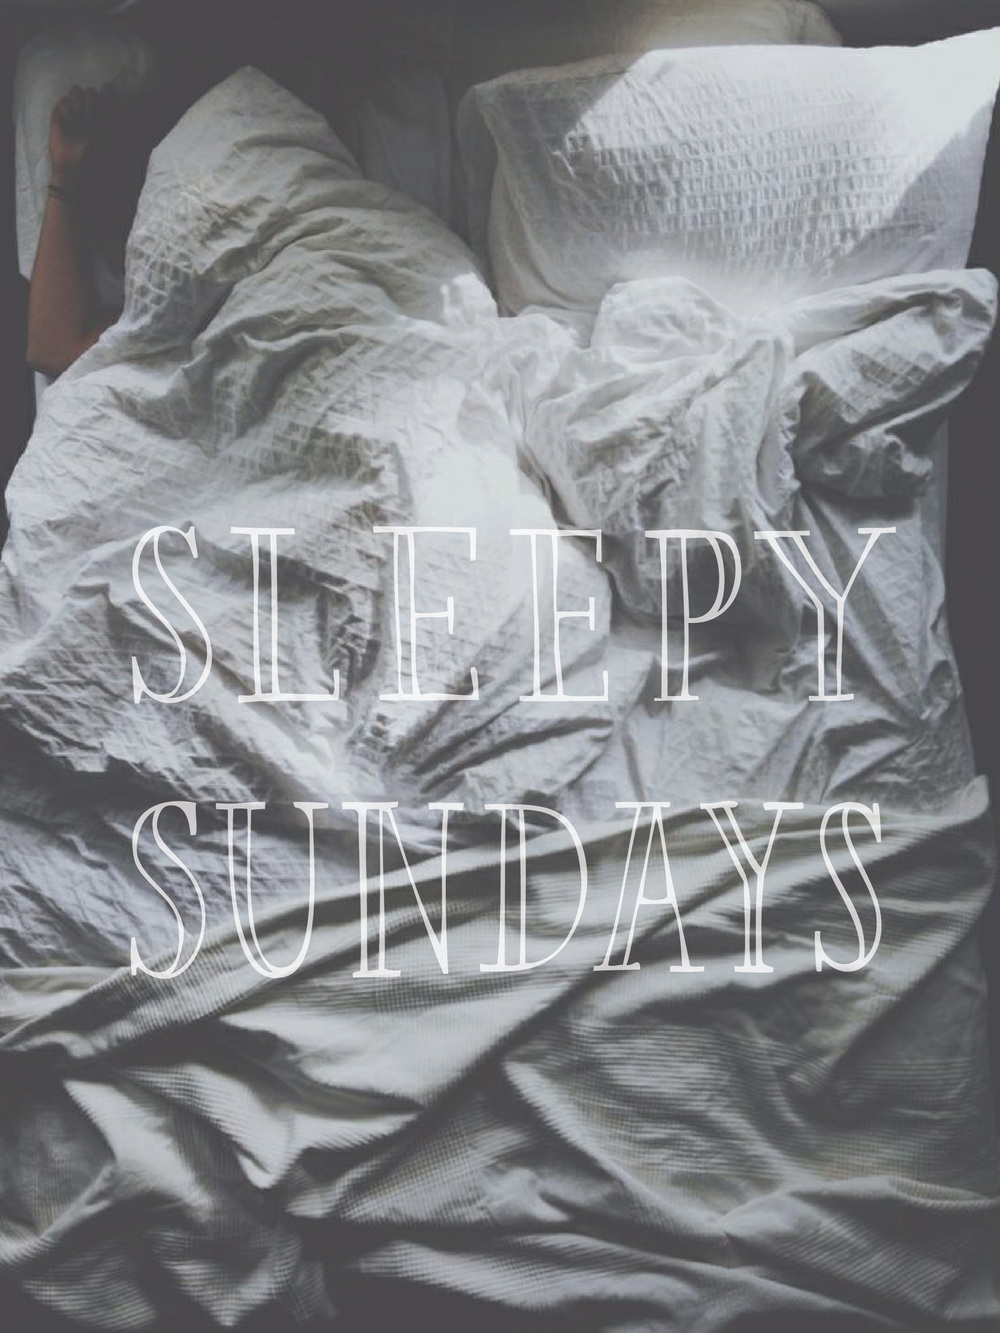 sleepy_sundays2.jpg